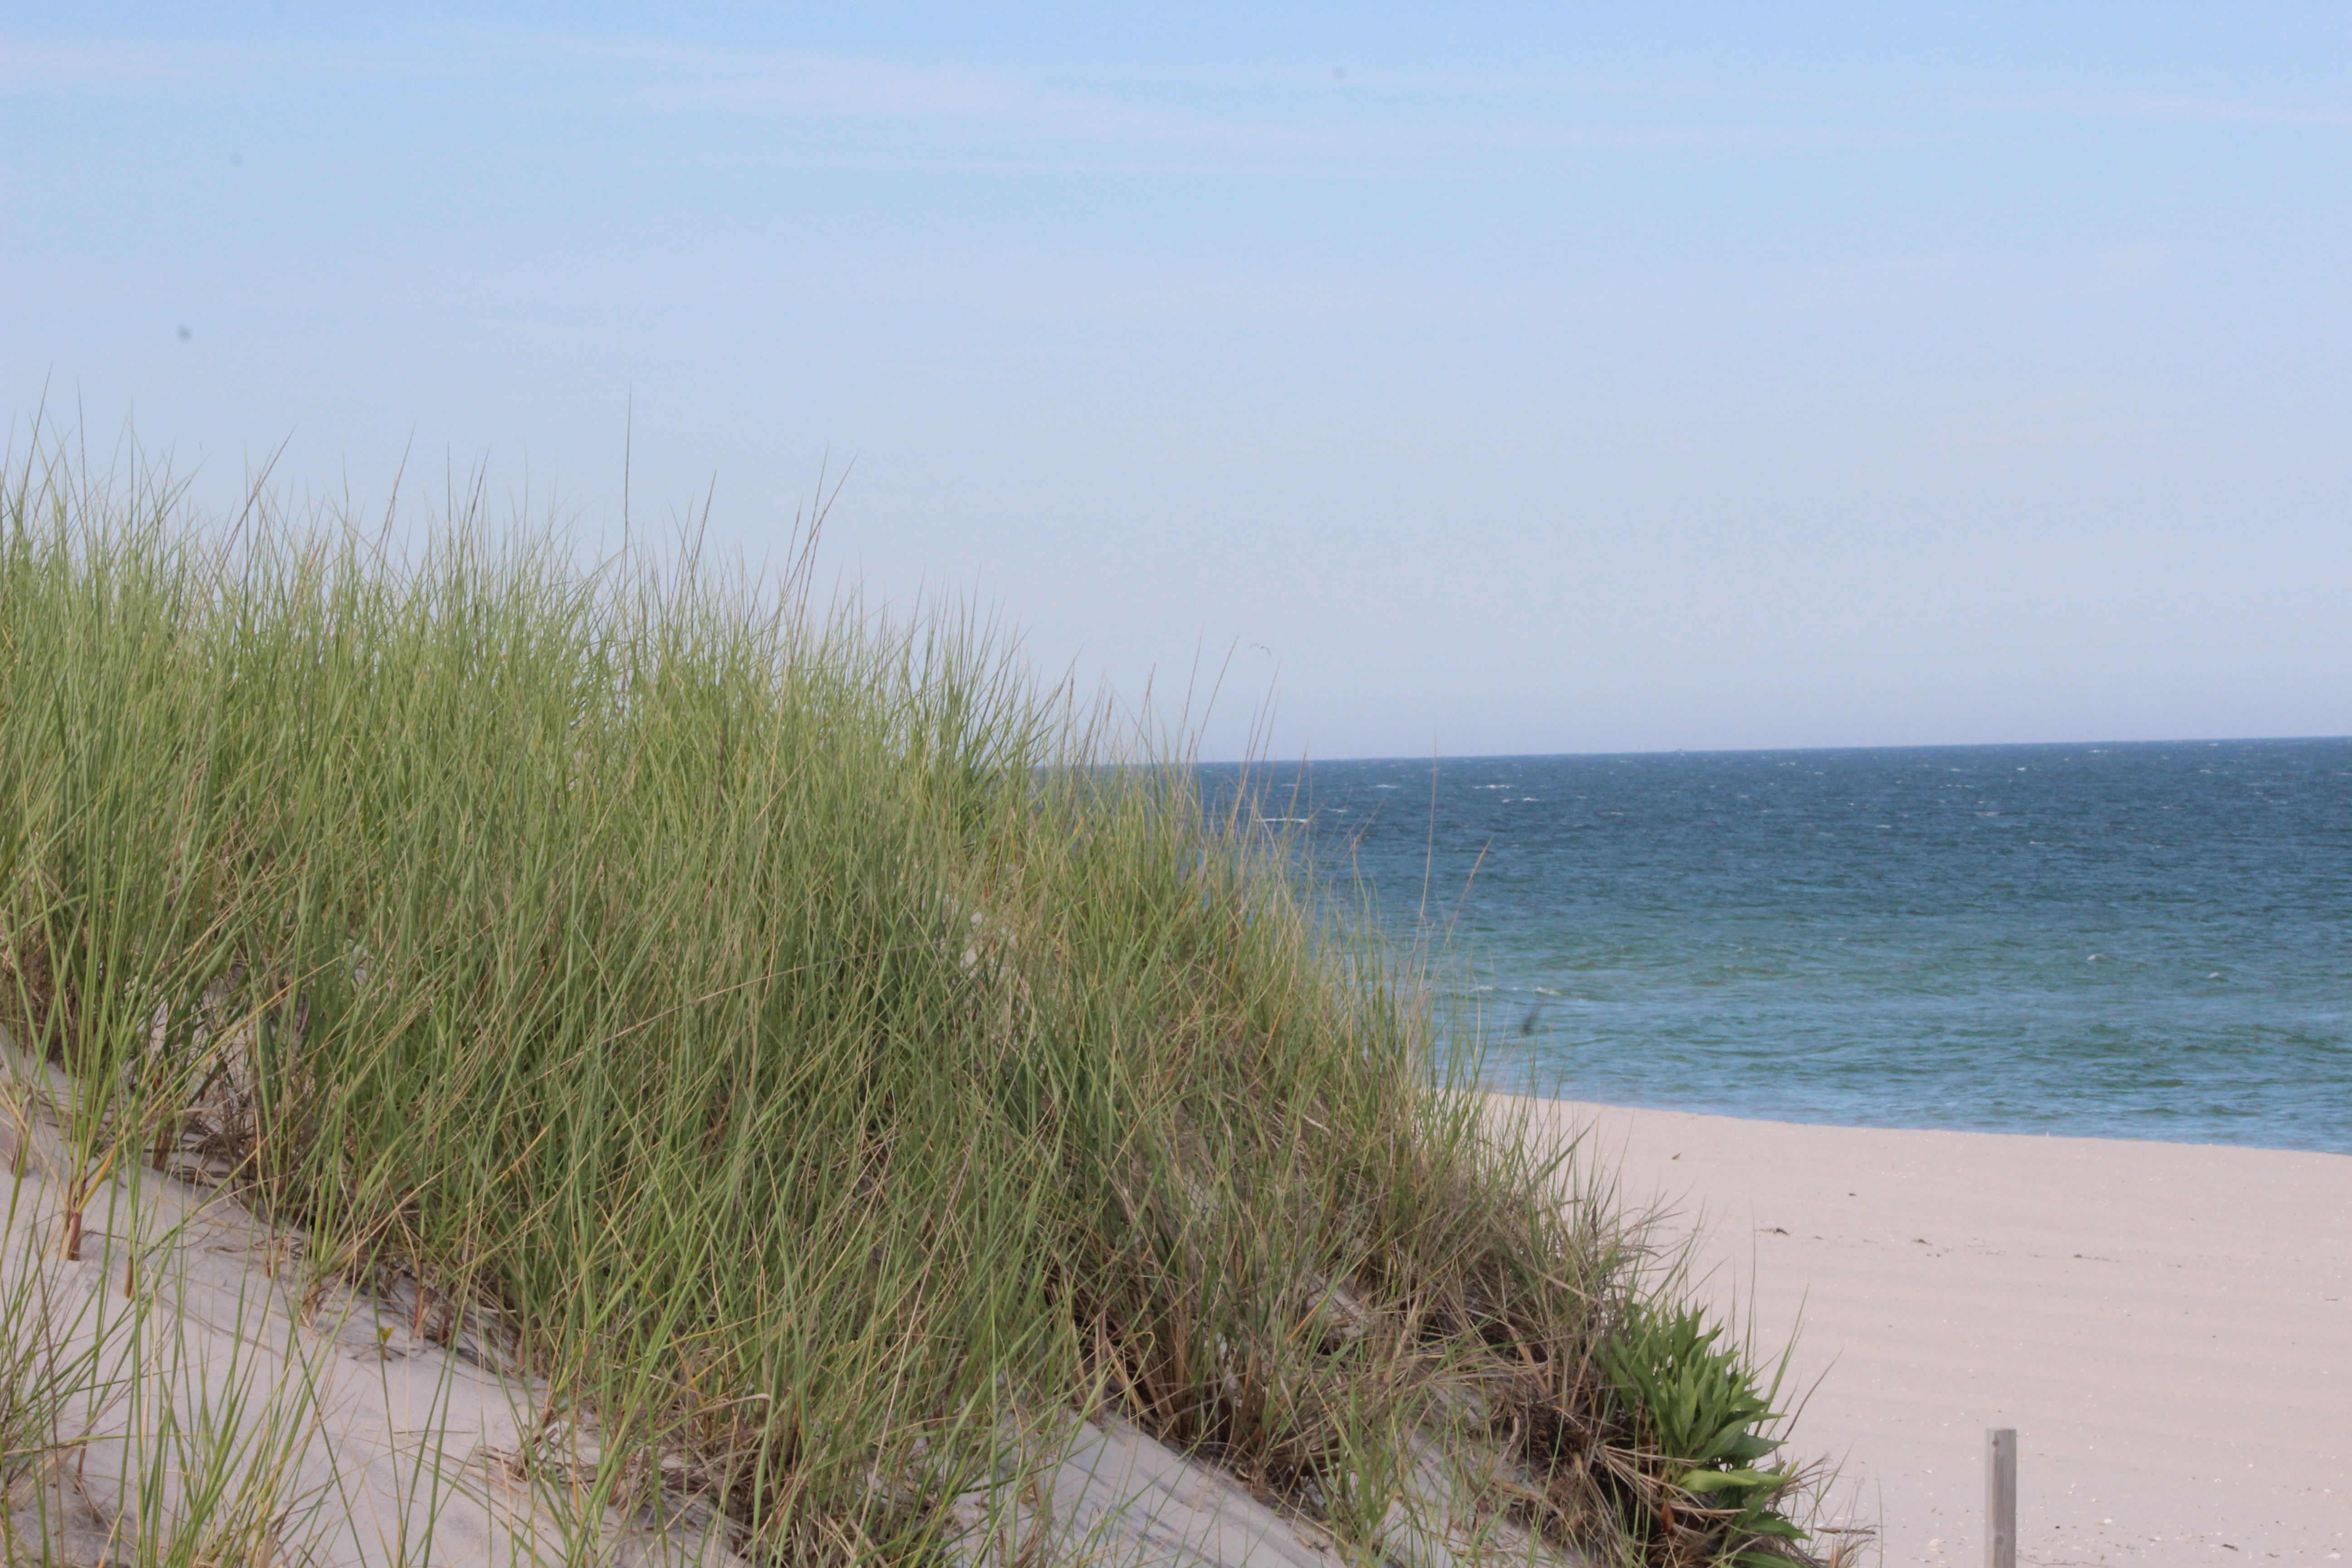 Making Offers in the LBI Real Estate Market